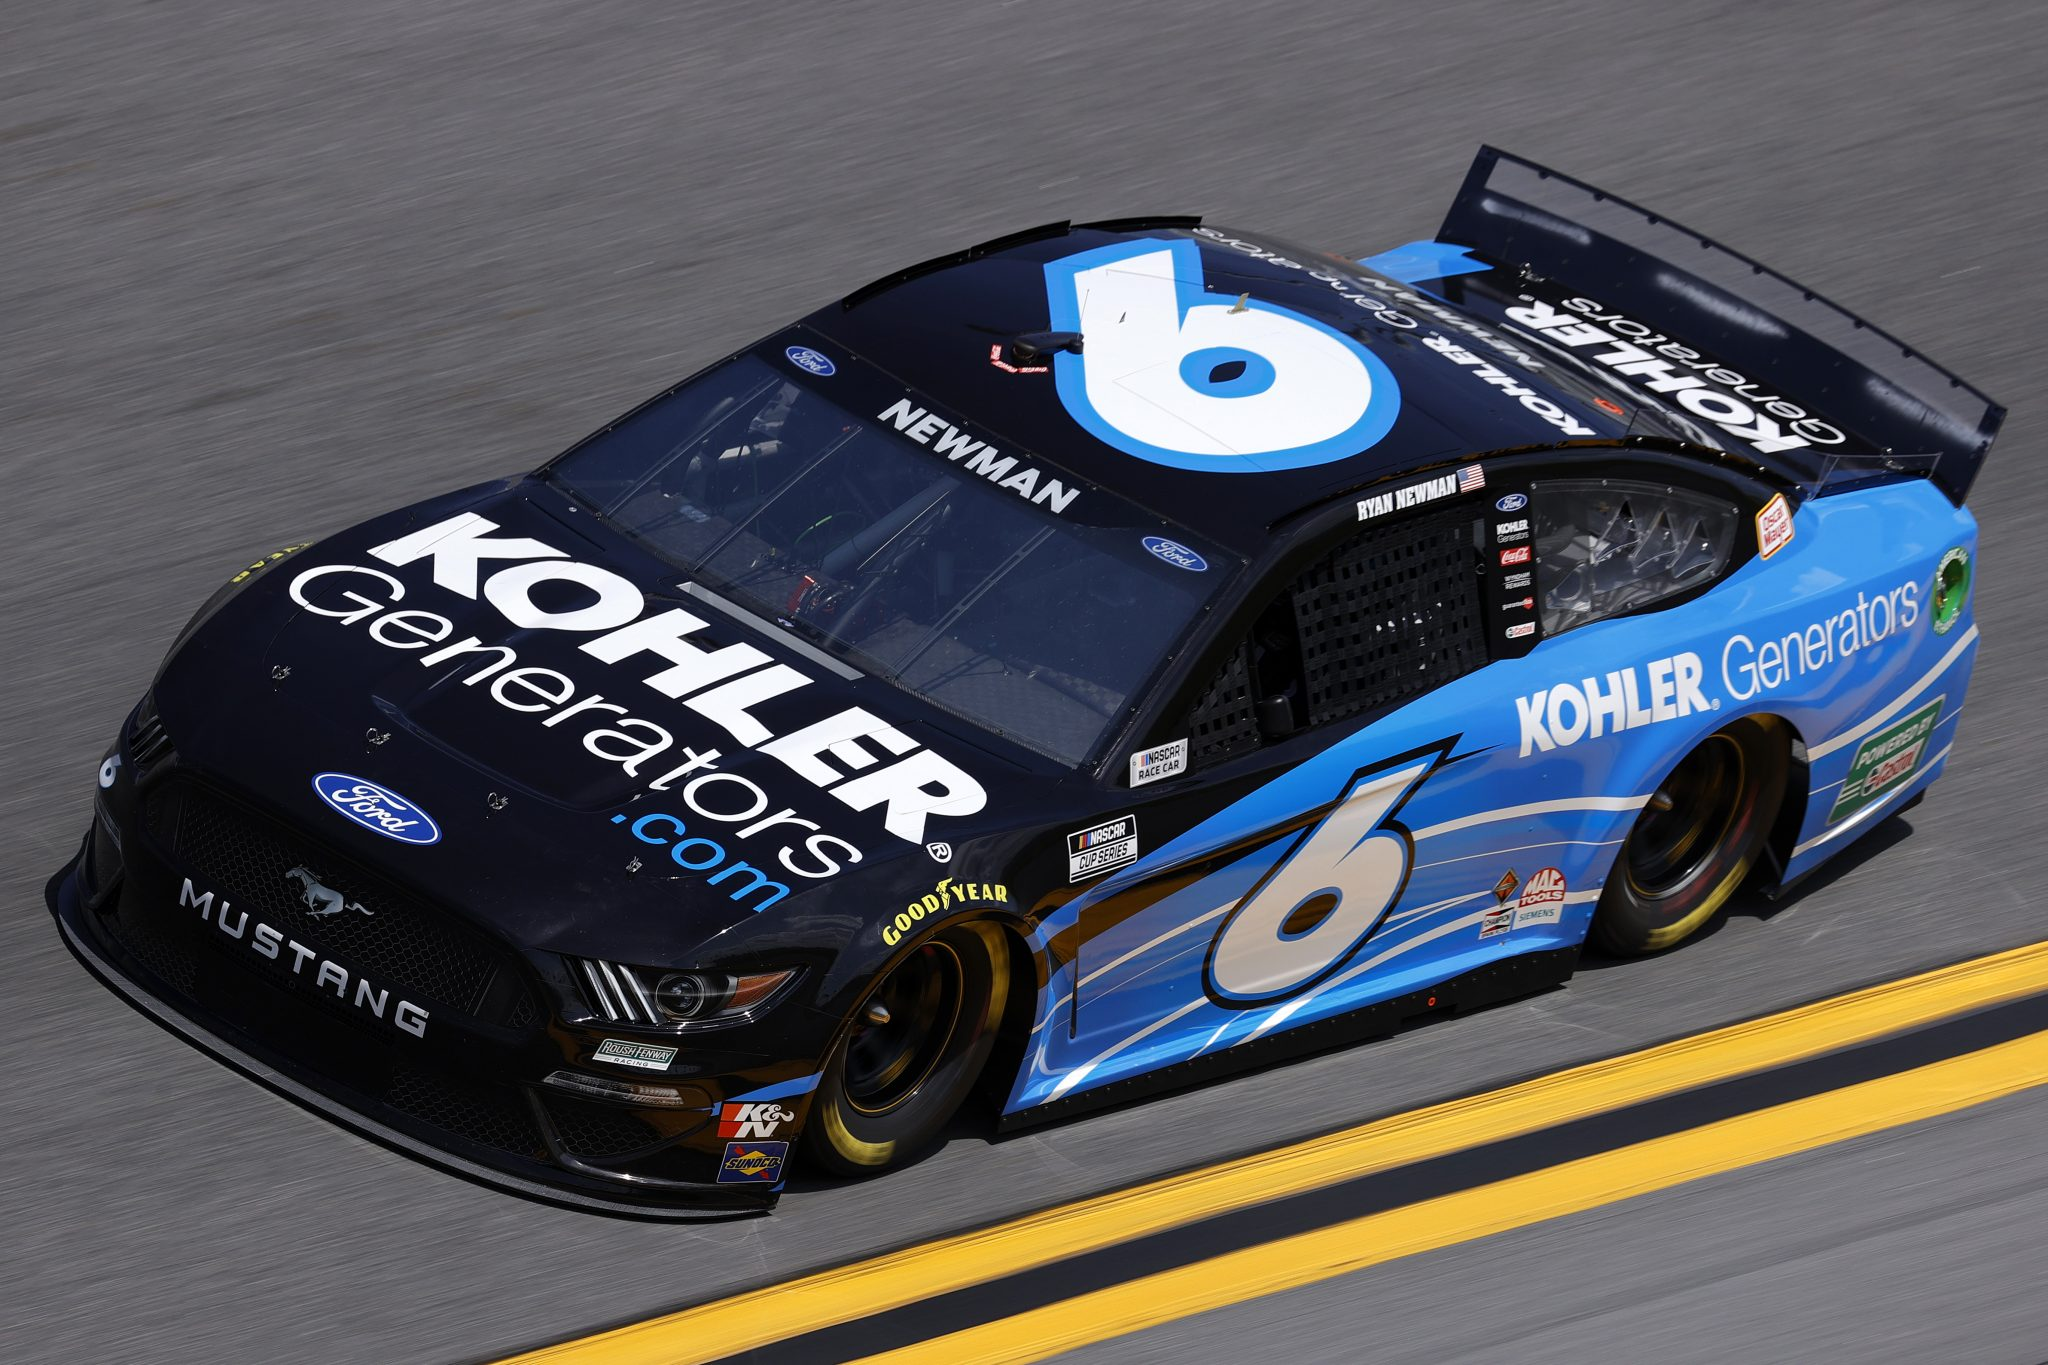 DAYTONA BEACH, FLORIDA - FEBRUARY 10: Ryan Newman, driver of the #6 Kohler Generators Ford, drives during practice for the NASCAR Cup Series 63rd Annual Daytona 500 at Daytona International Speedway on February 10, 2021 in Daytona Beach, Florida. (Photo by Jared C. Tilton/Getty Images) | Getty Images